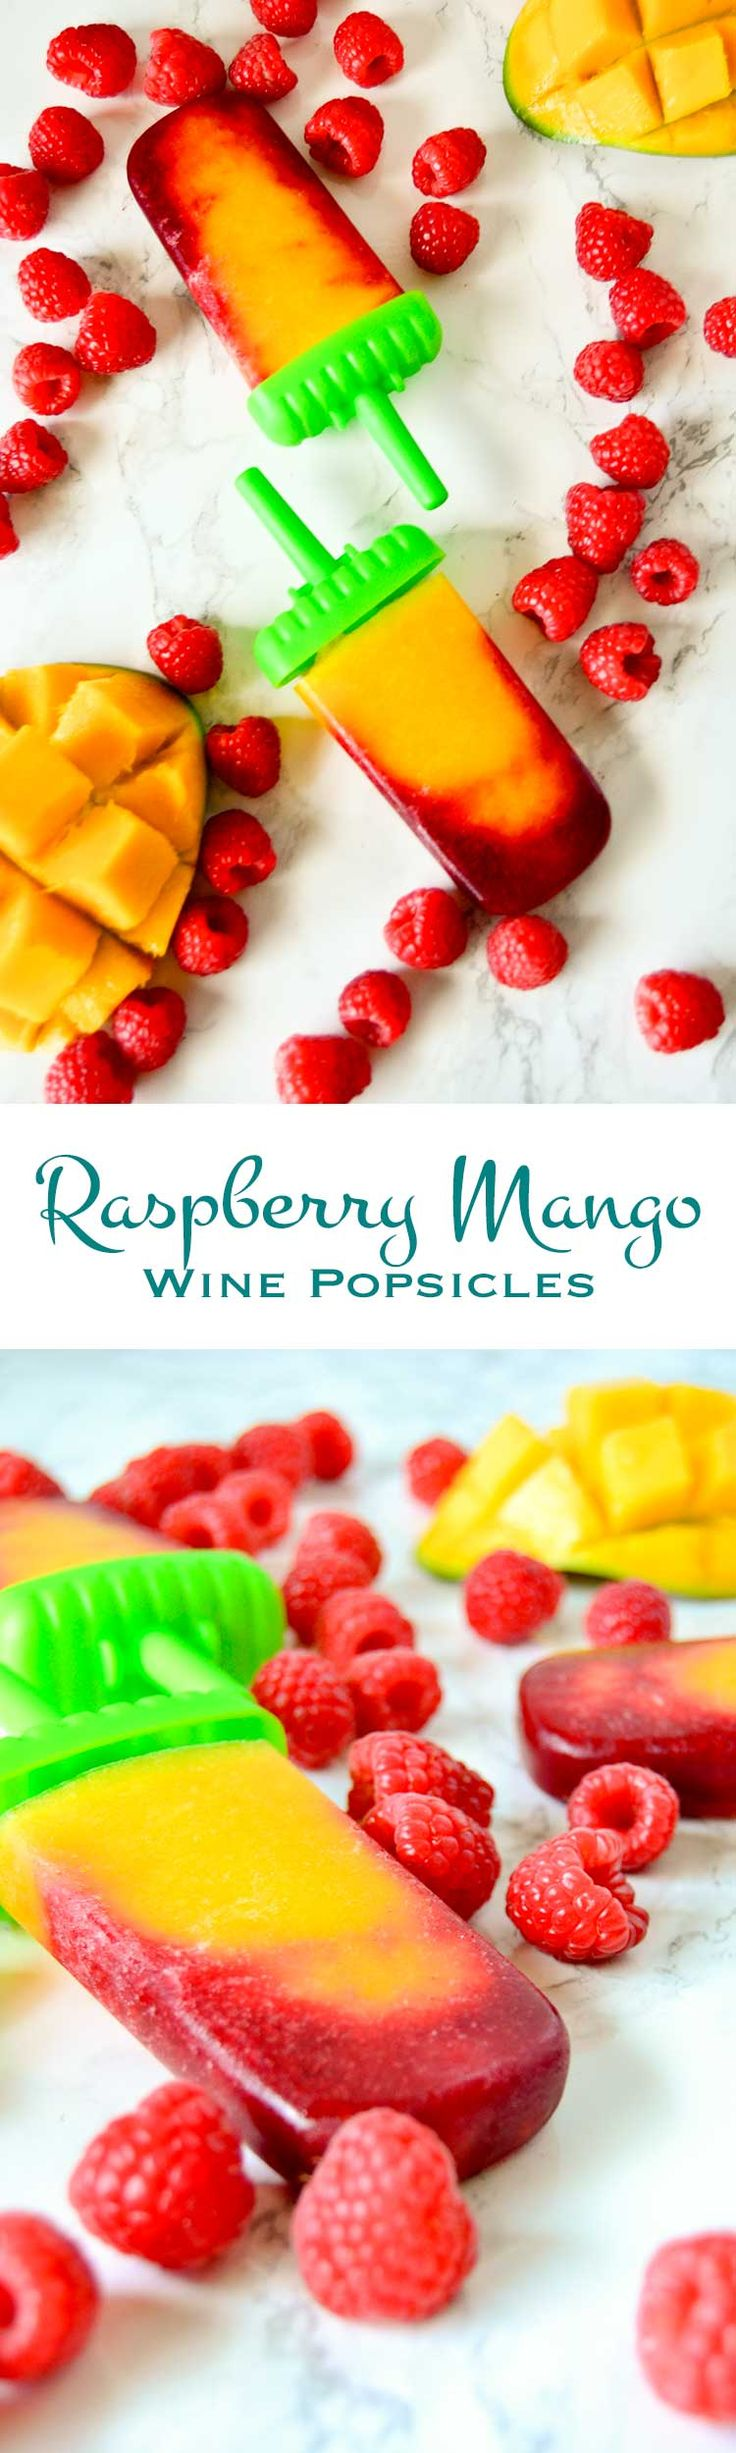 Raspberry mango wine popsicles are a delightfully refreshing, adults only treat. Perfect for hot summer days, BBQs, or no special reason at all.